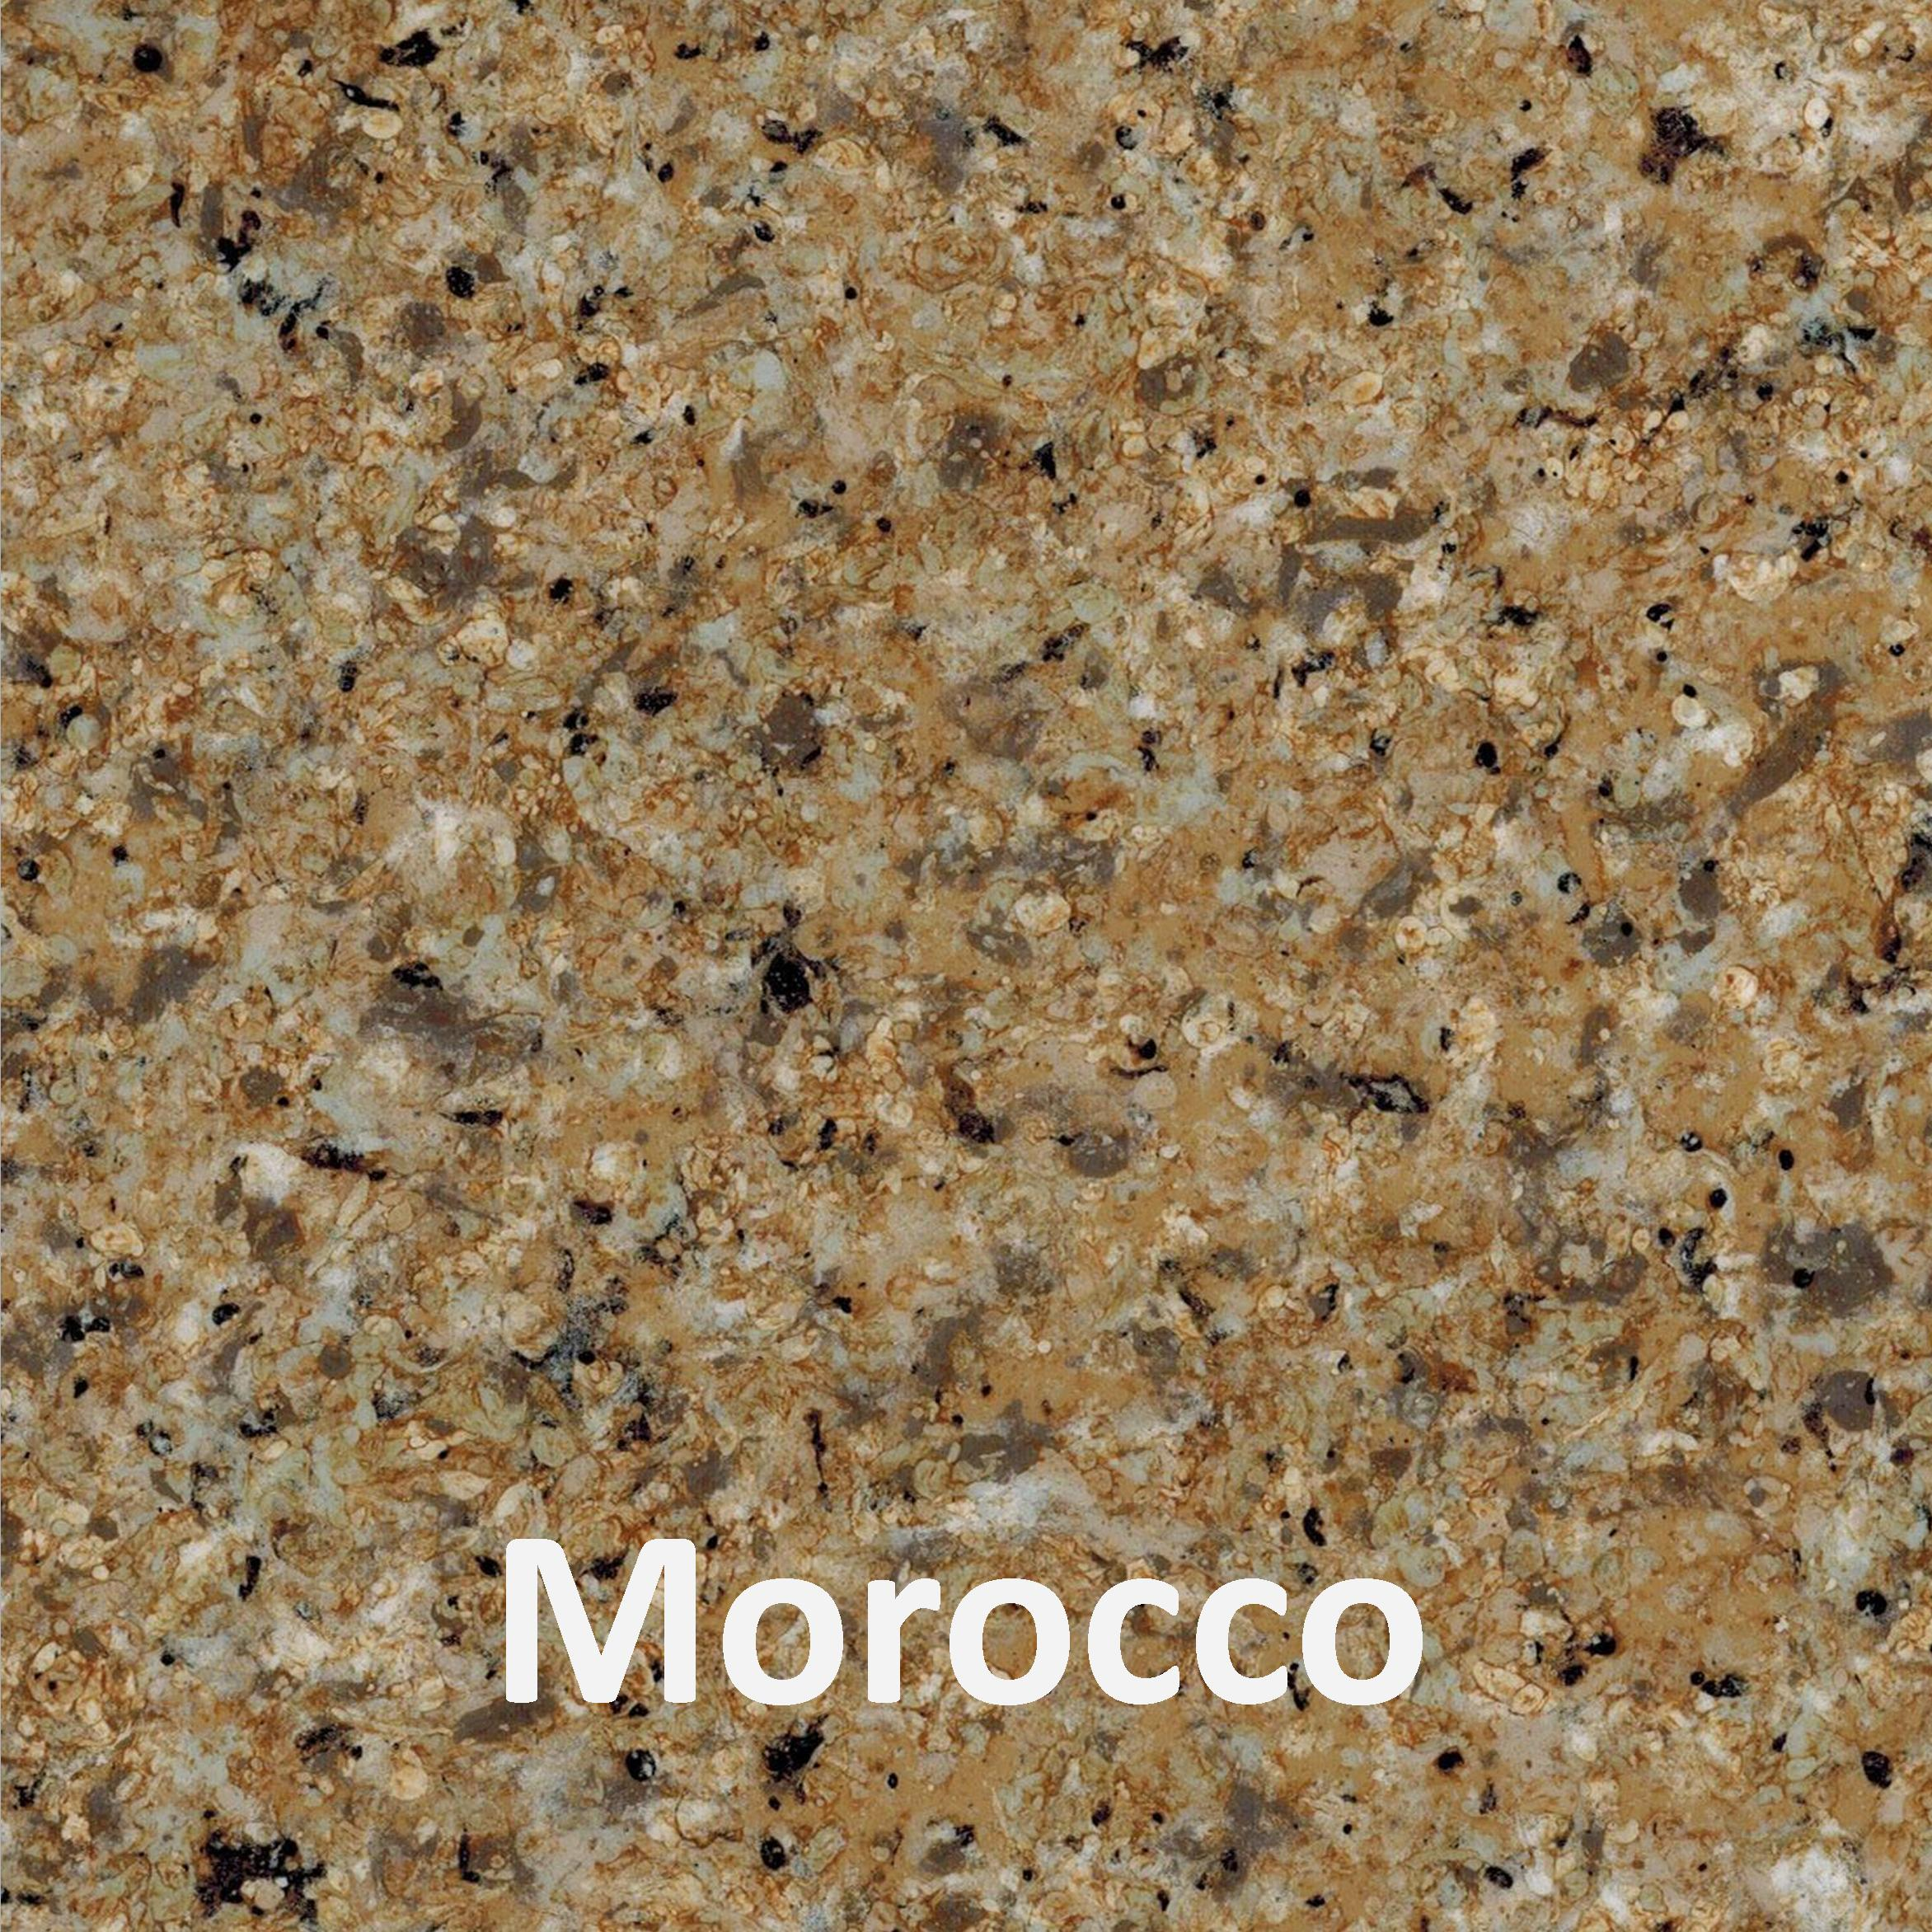 morocco-label.jpg